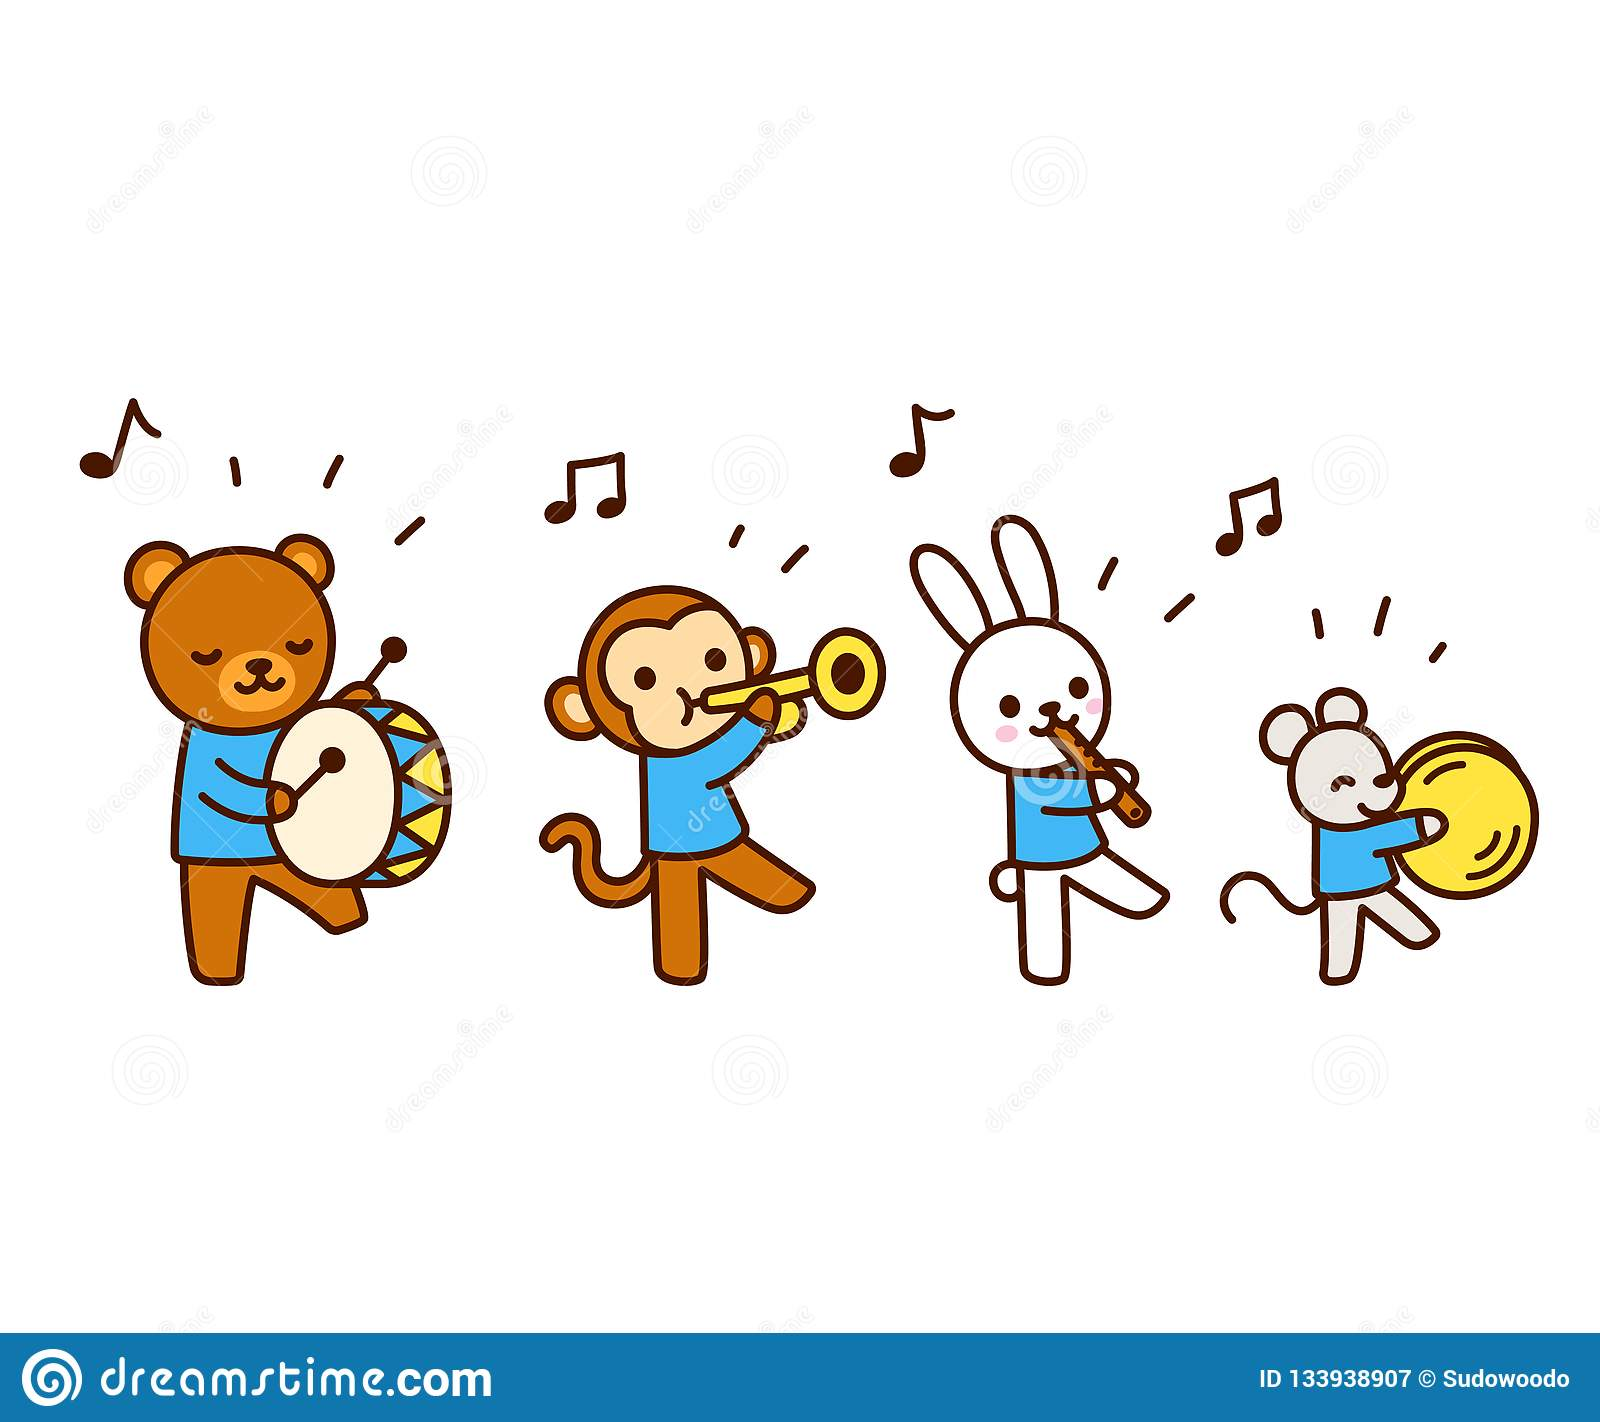 Image of: Cute Animals Cute Cartoon Animals Marching Band Drawing Kawaii Animal Characters Playing Music Isolated Vector Illustration Dreamstimecom Cute Cartoon Animals Playing Music Stock Vector Illustration Of